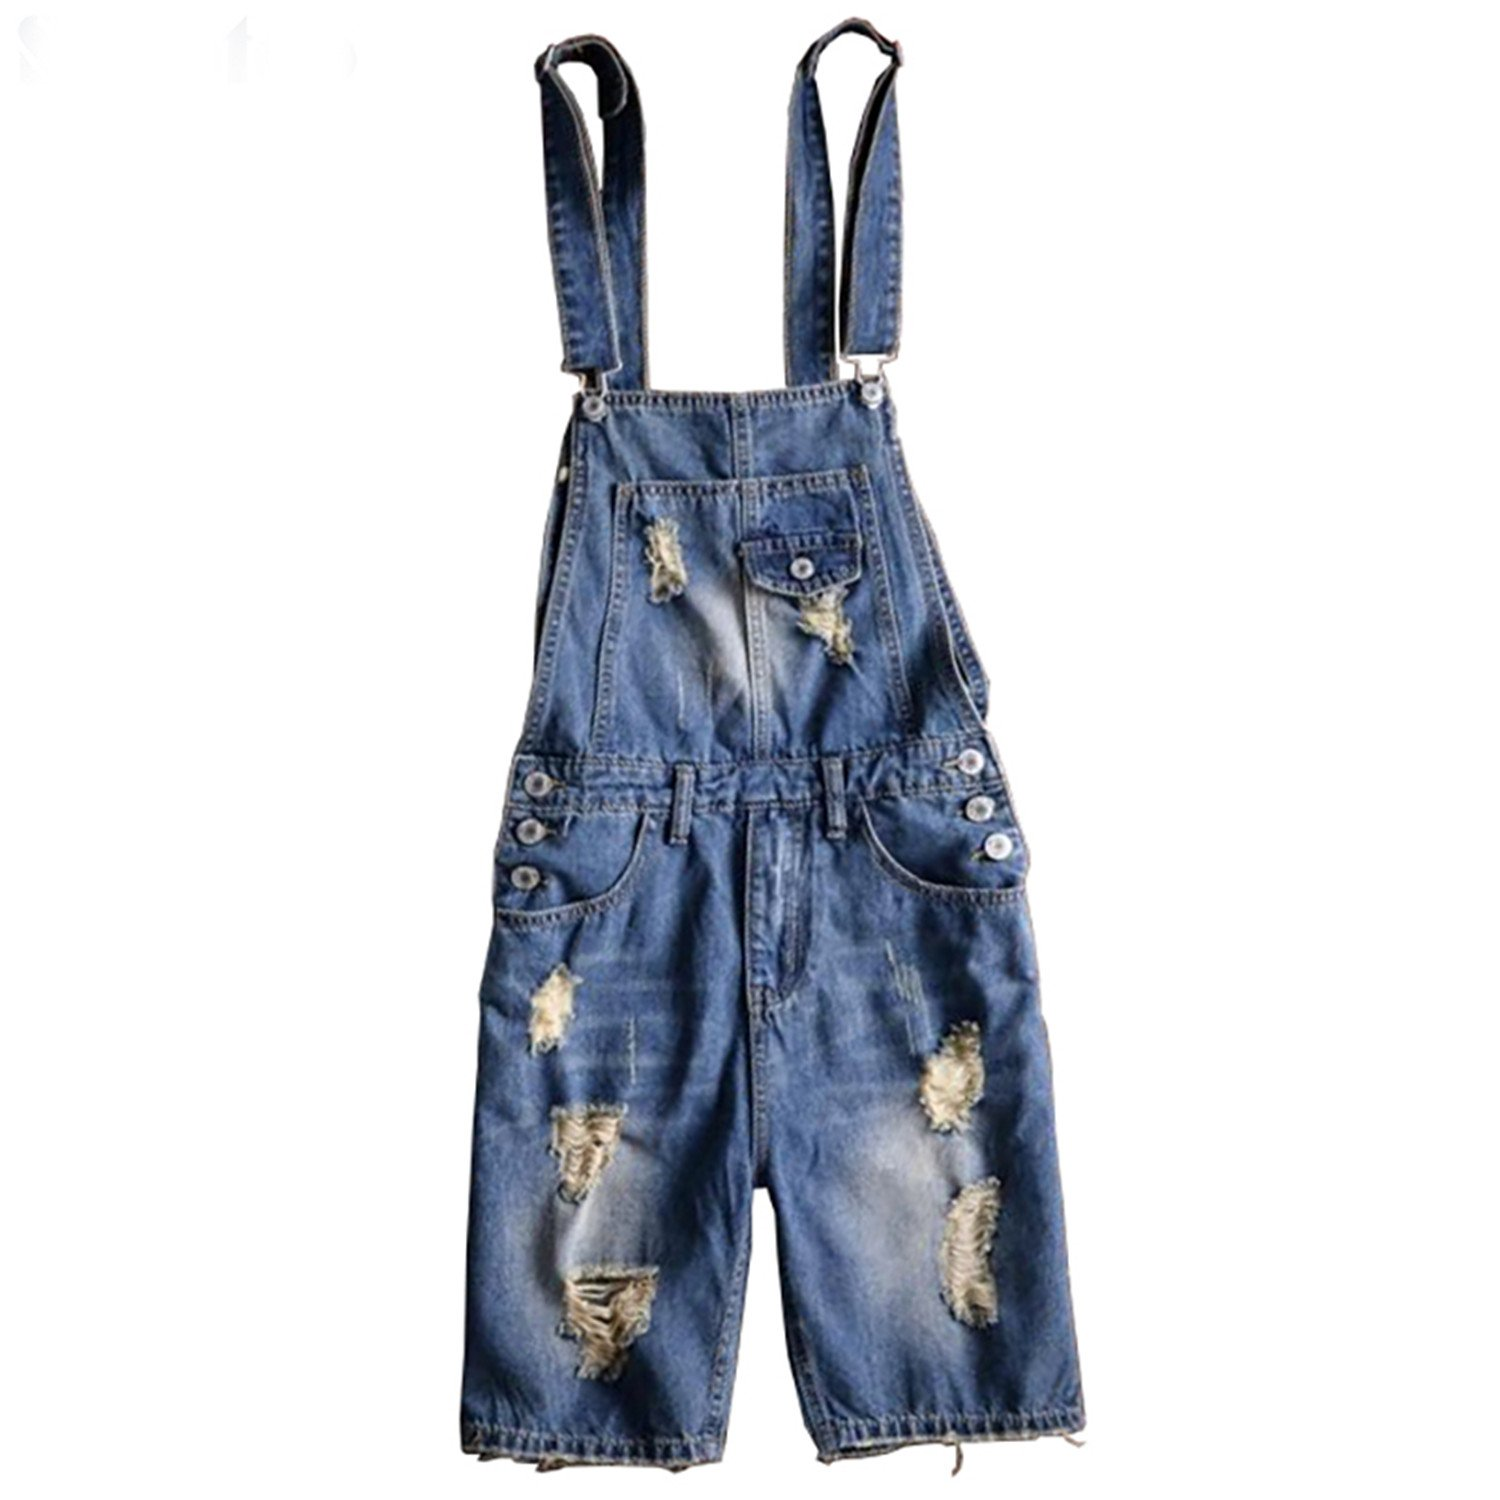 e5db152859 Henraly Men s Plus Size Knee Length Ripped Denim Bib Overalls Shorts Summer  Holes Blue Distressed Jumpsuits Jeans at Amazon Men s Clothing store